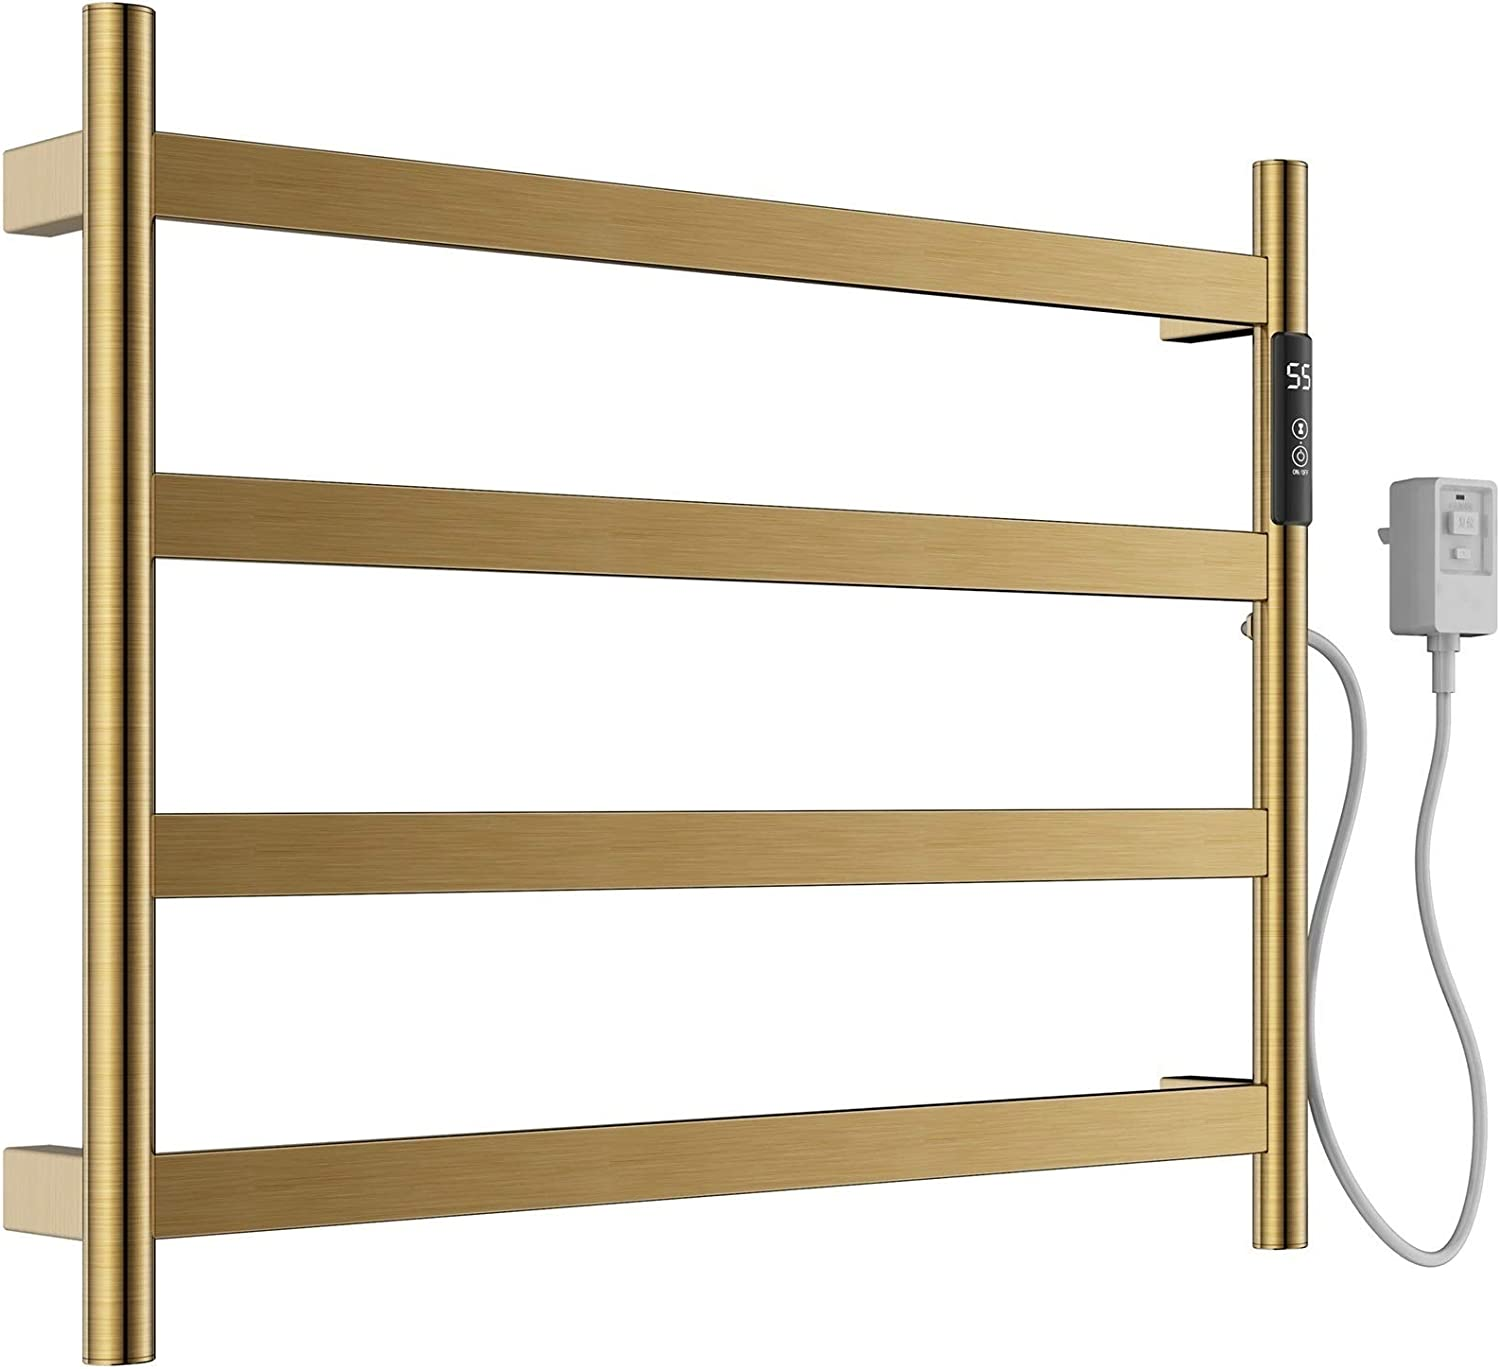 Electric Towel Warmer Wall-Mounted Drying Rack 1-8 Hours Timing Function Builtin Timer Electric Heated Towel Warmer, Carbon Fiber Heating Bathroom radiators ( Color : Brushed gold , Size : Plug in )